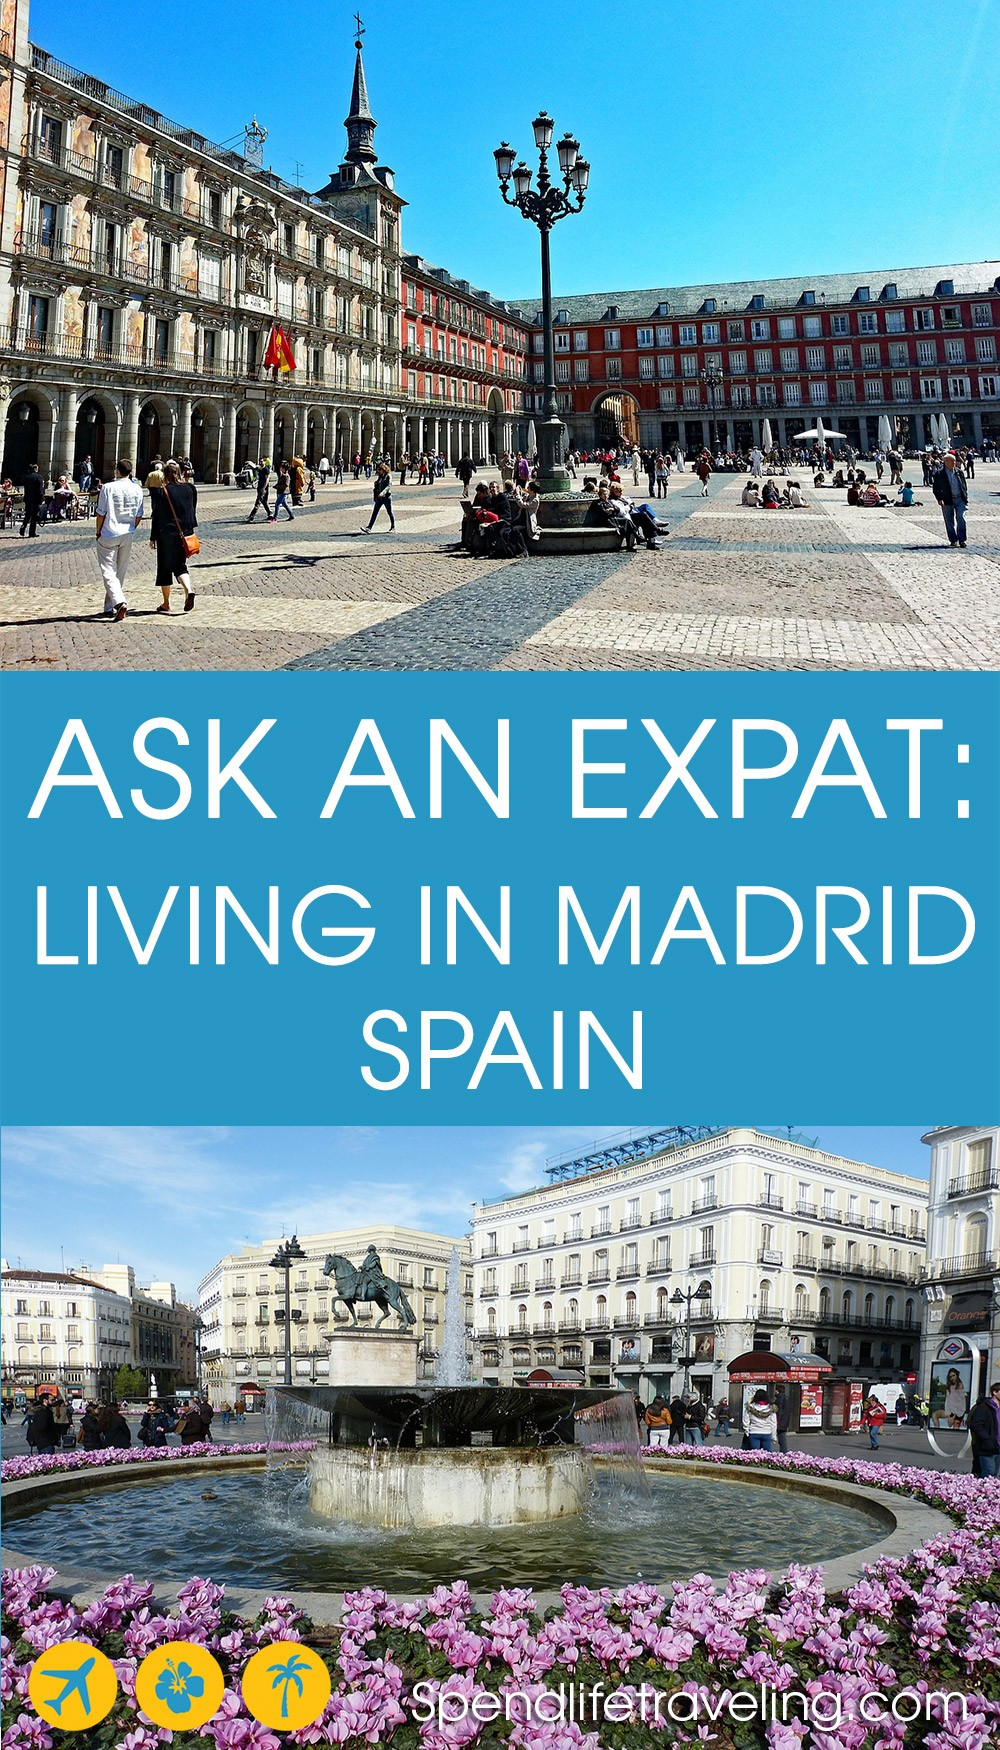 Interview with an expat about what living in Madrid is like